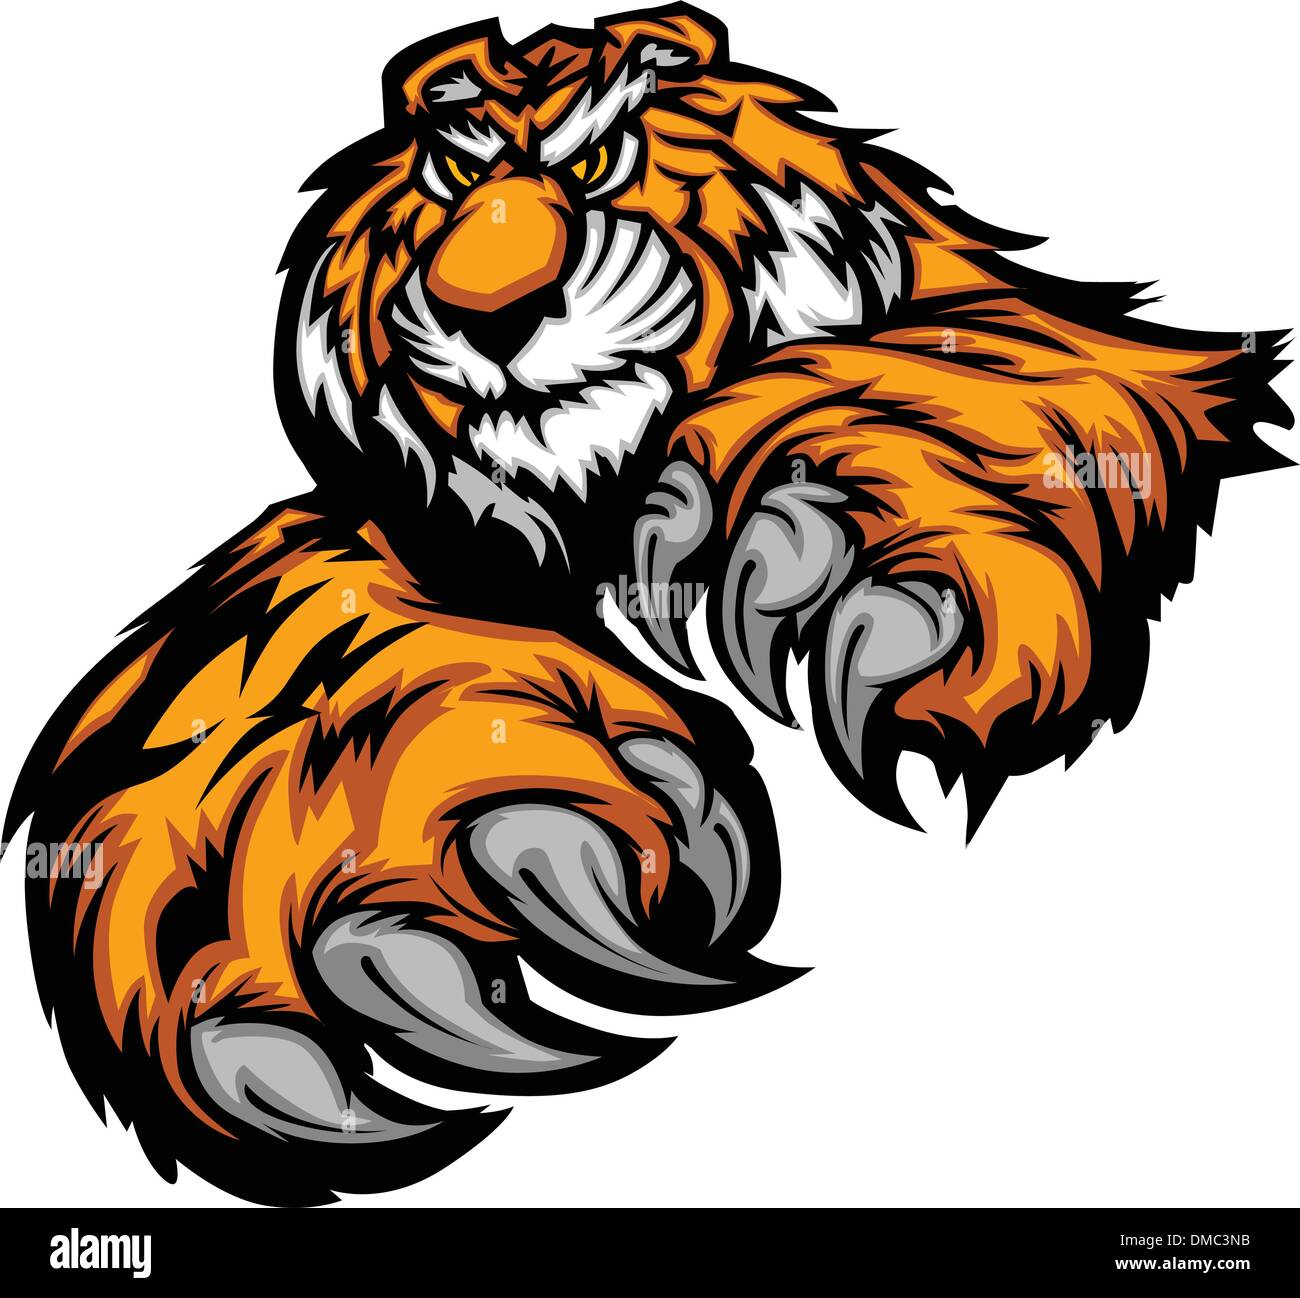 Tiger Mascot Body with Paws and Claws - Stock Vector